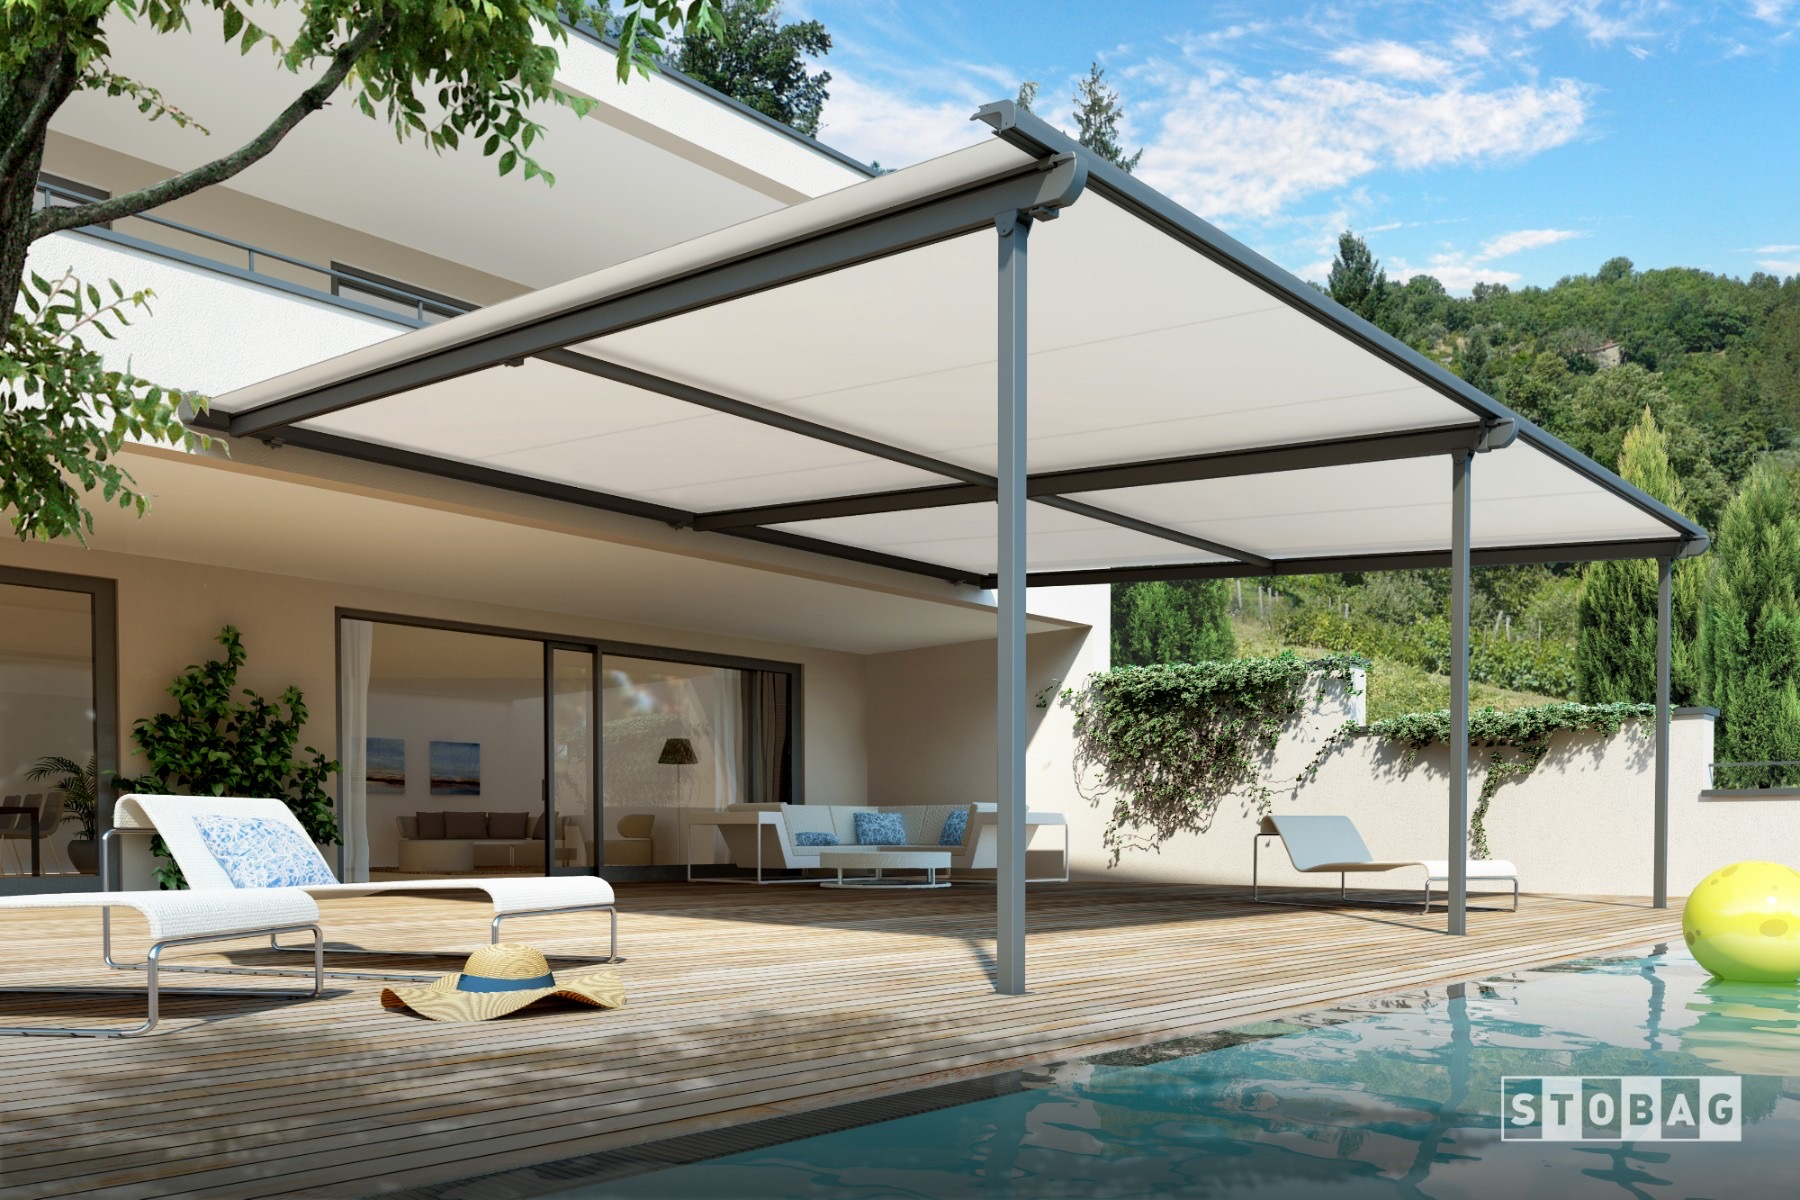 retractable canopy roof